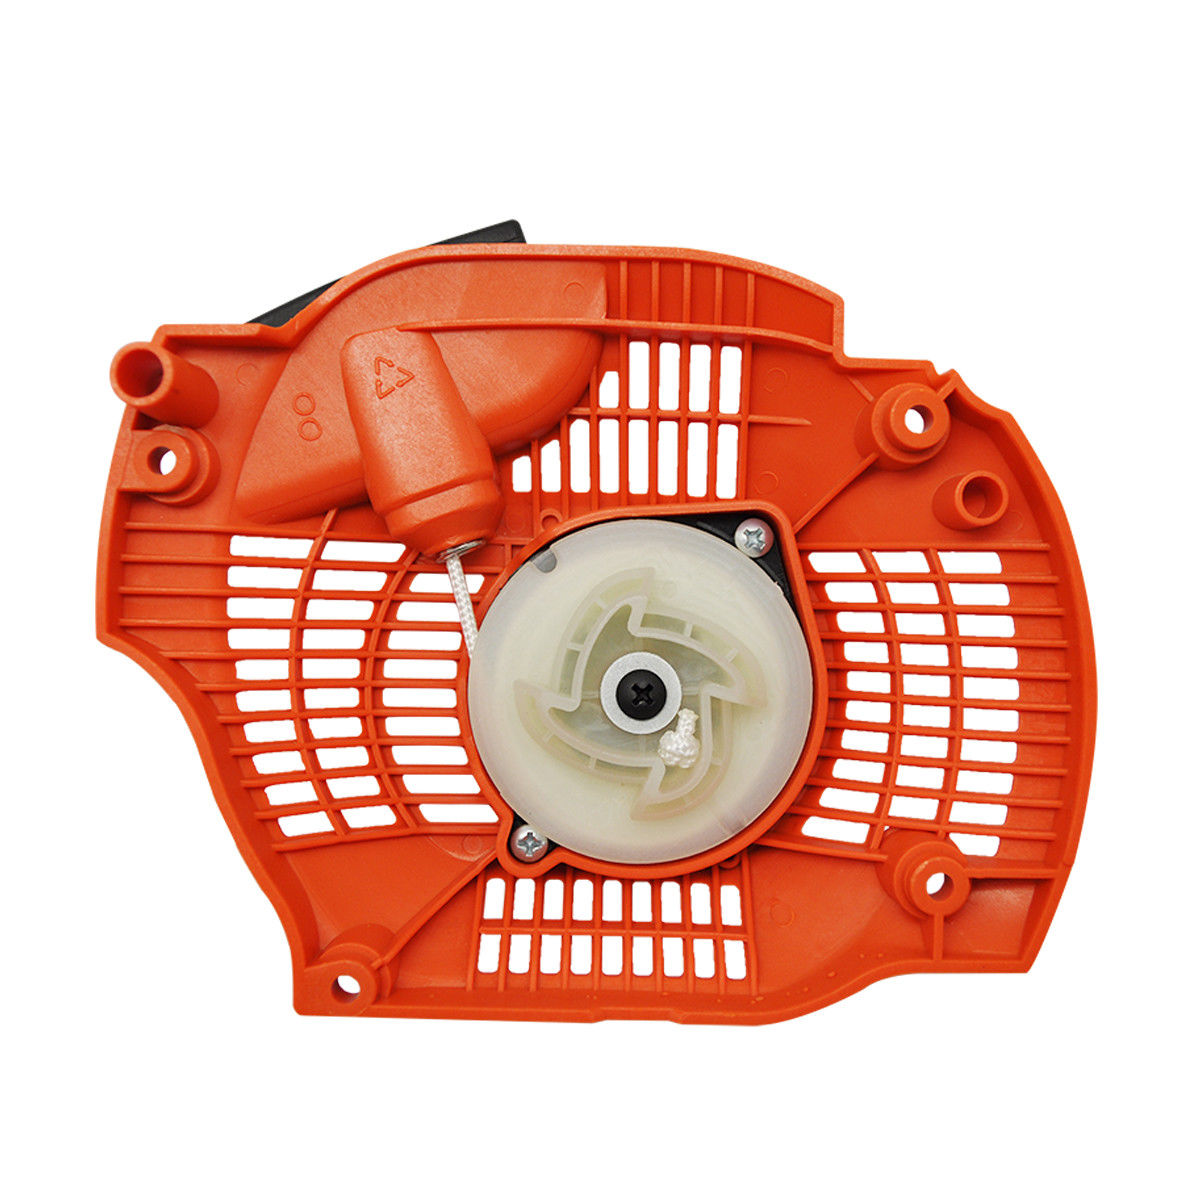 Recoil Pull Starter for Husqvarna 450 445 Chainsaw Replaces ...